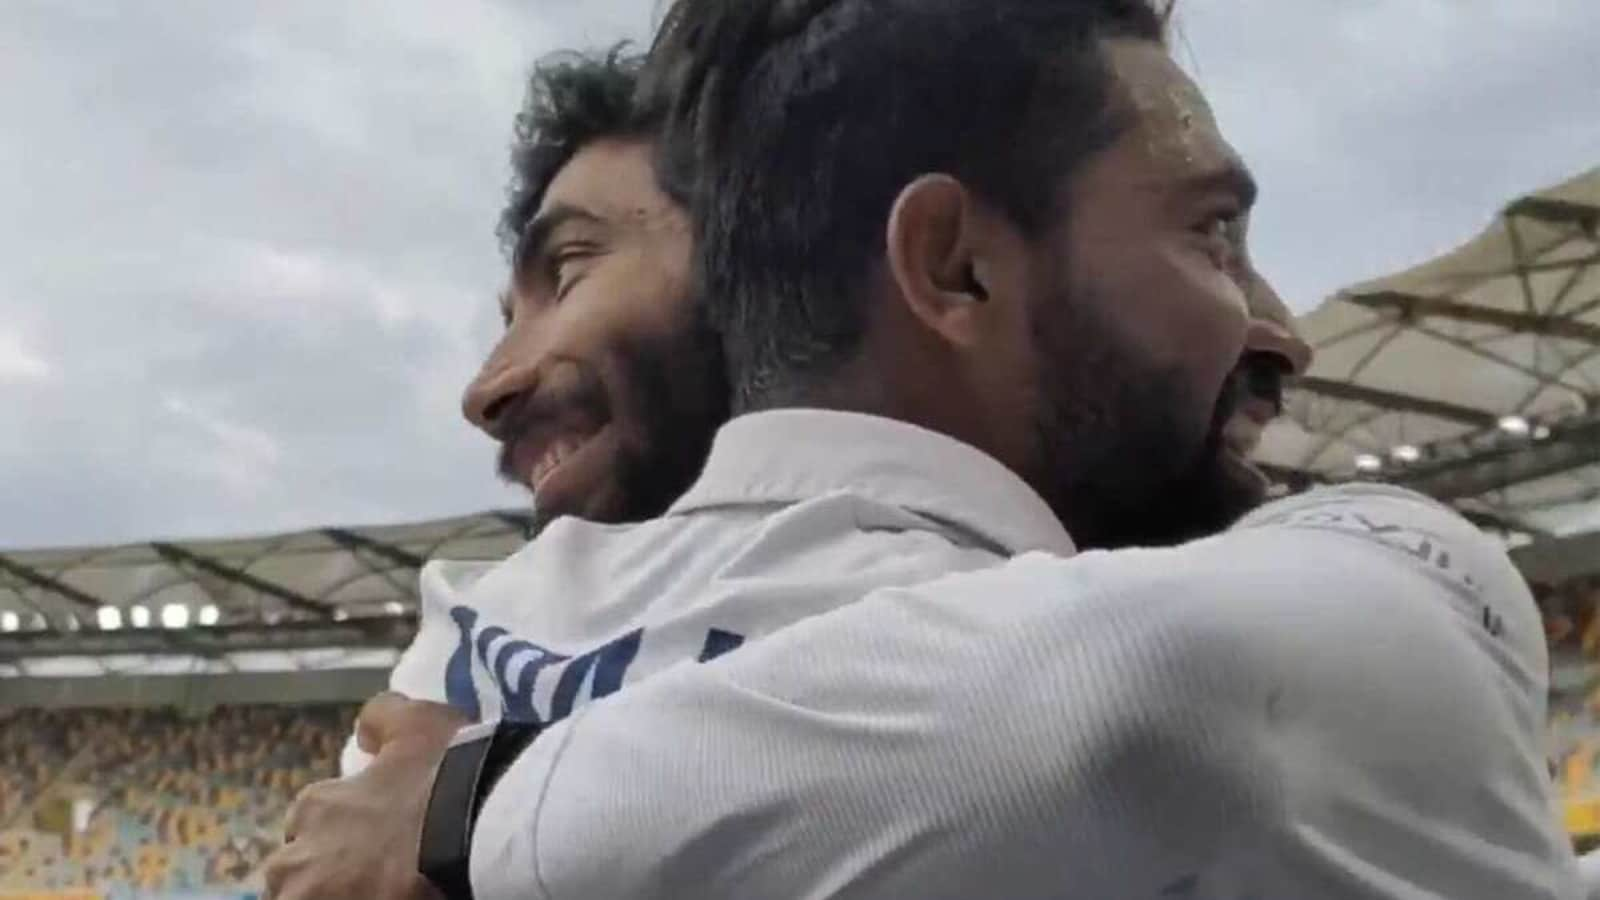 Bumrah welcomed emotional Siraj with a hug after maiden five-for